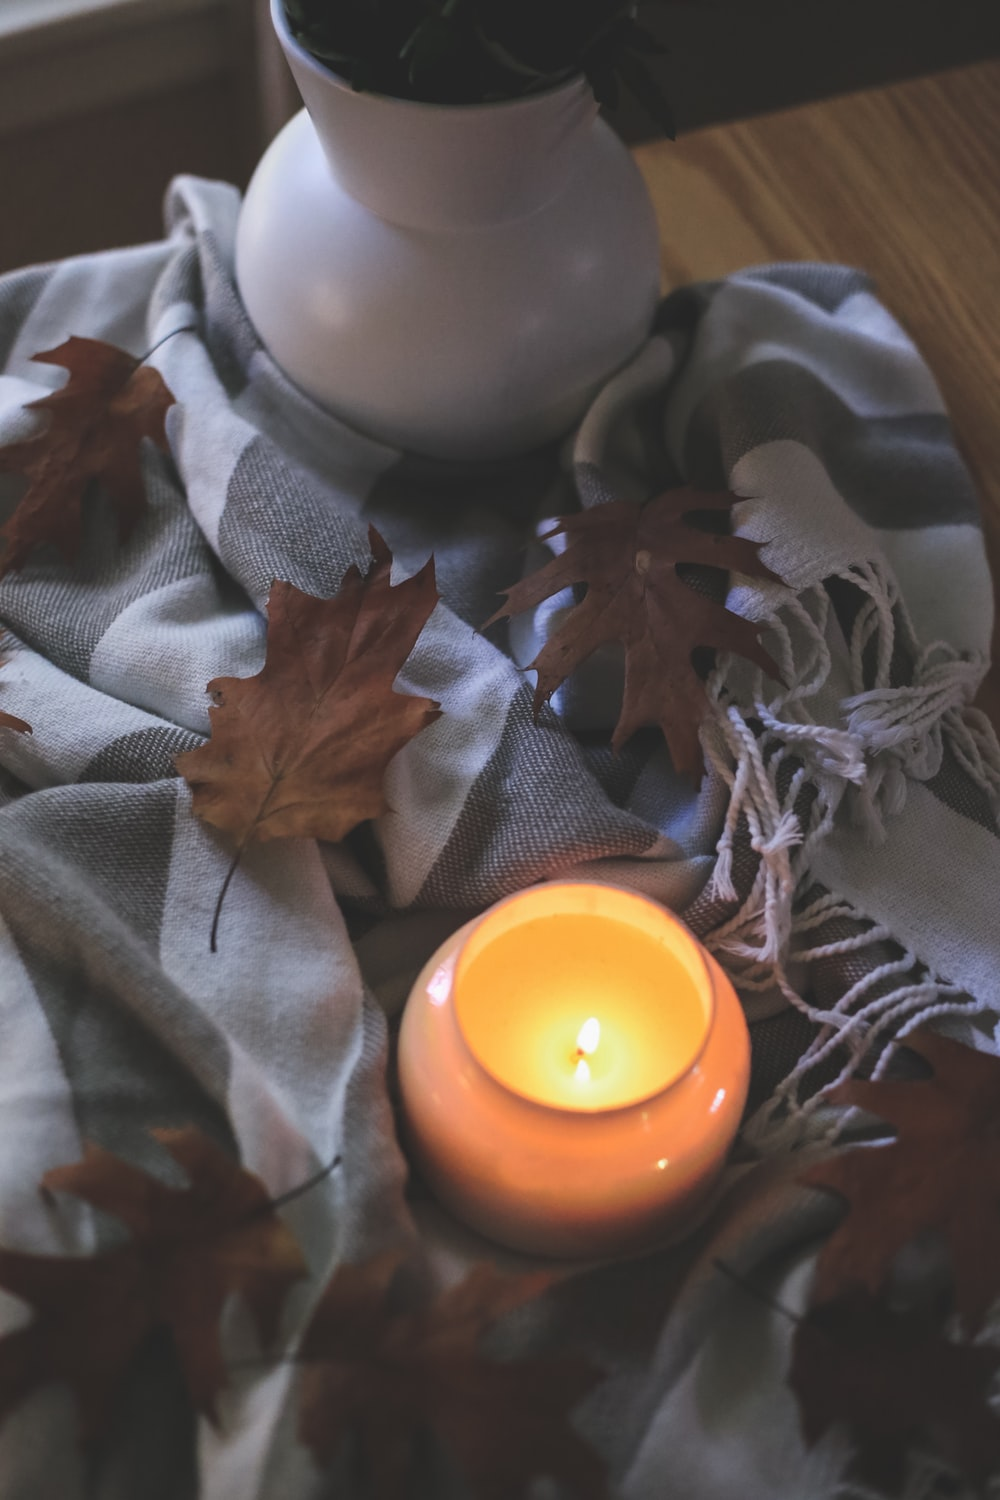 white and yellow candle on gray and brown floral textile